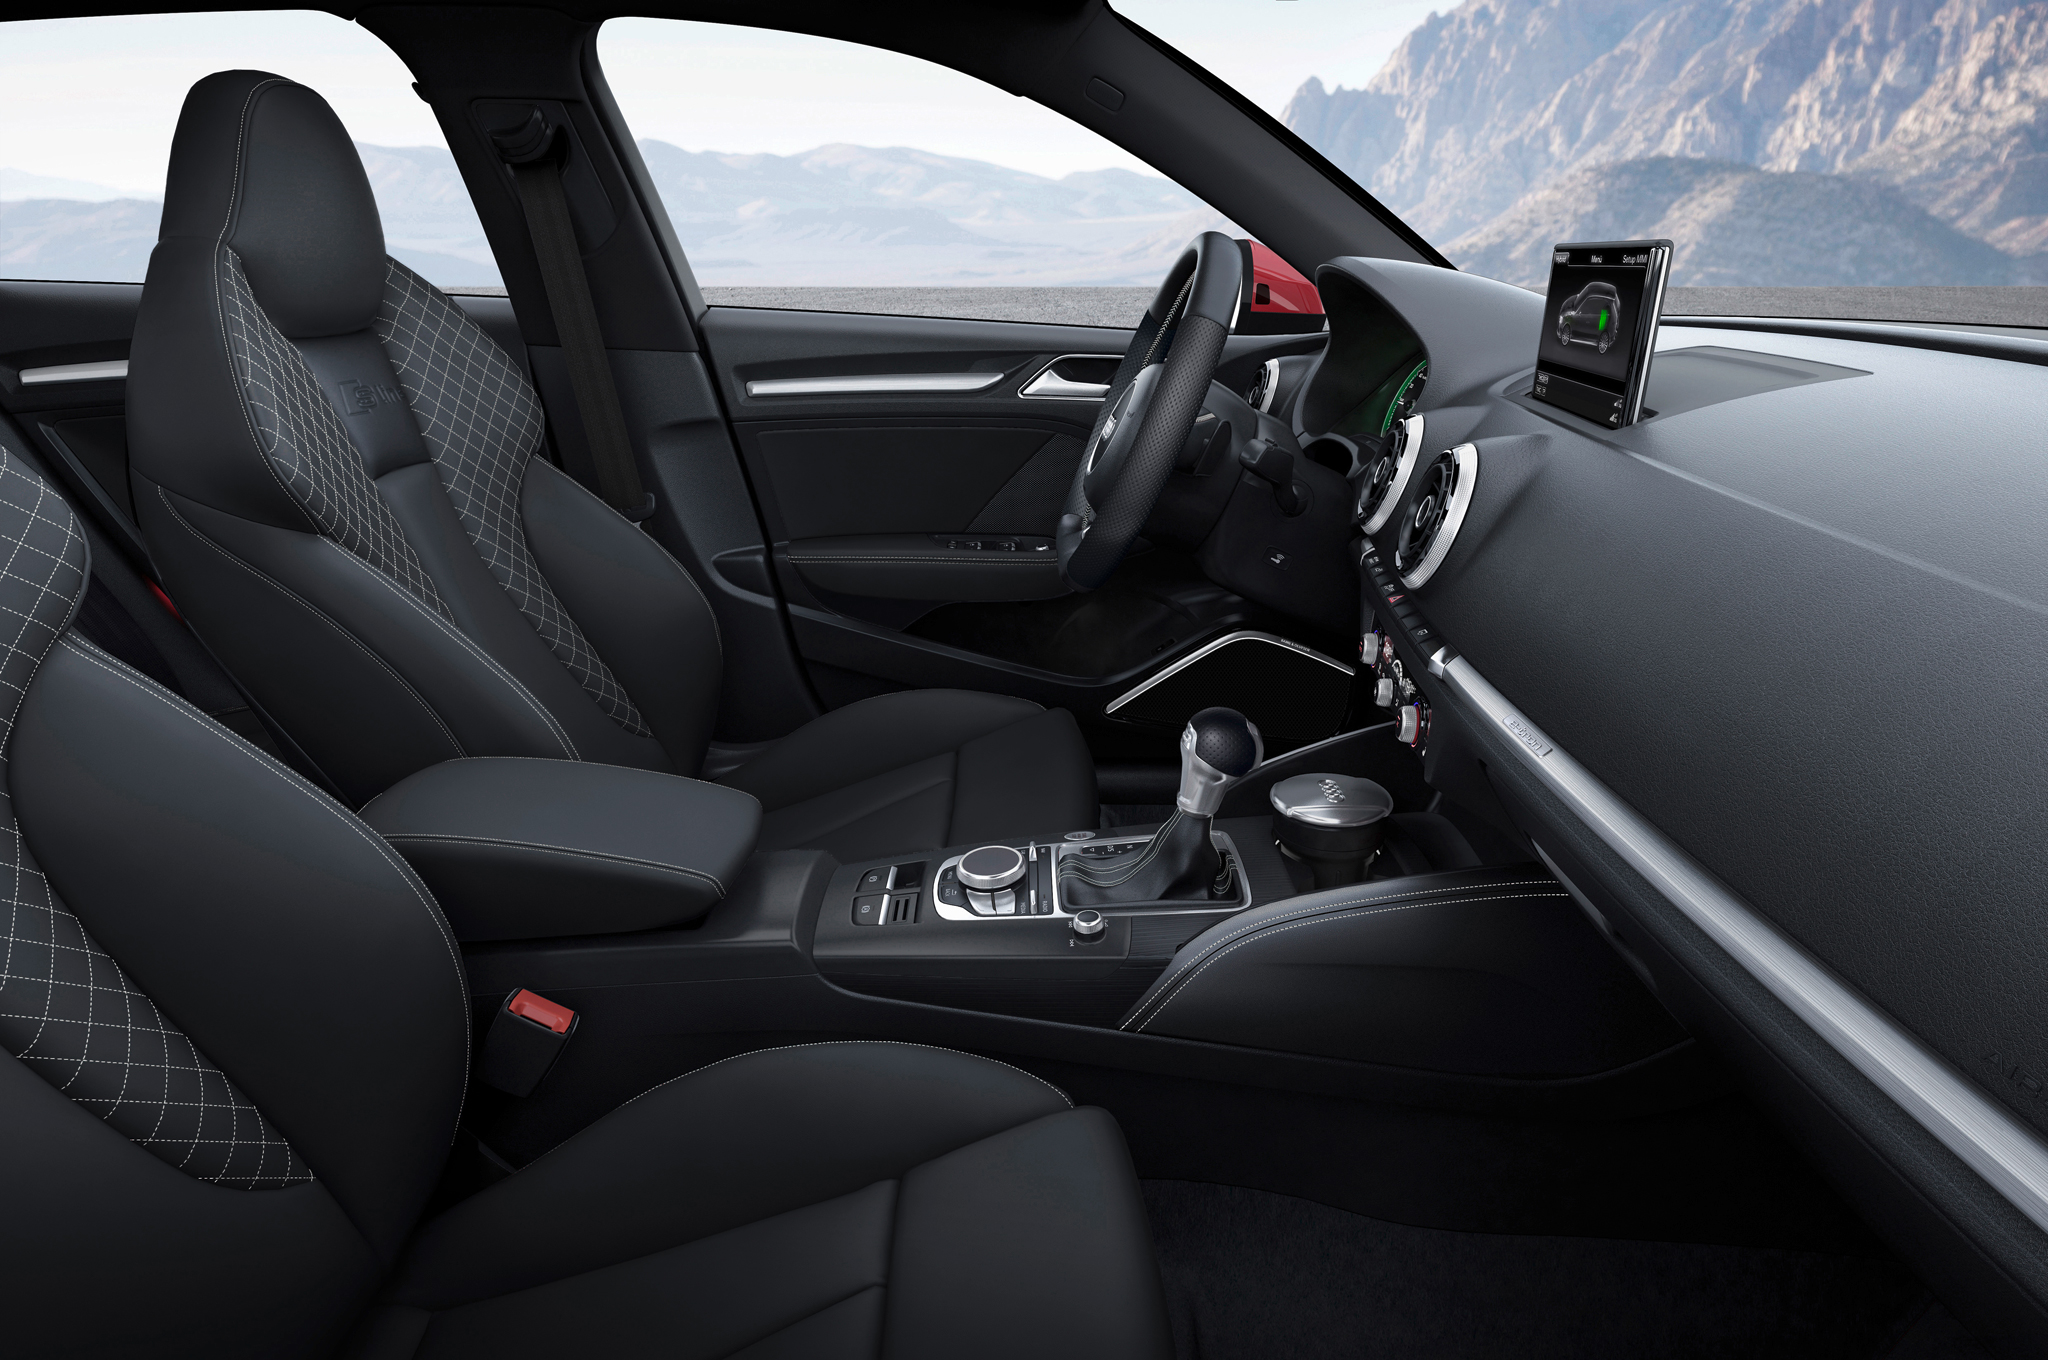 2015 Audi A3 Front Seat And Interior View 310 Cars Performance